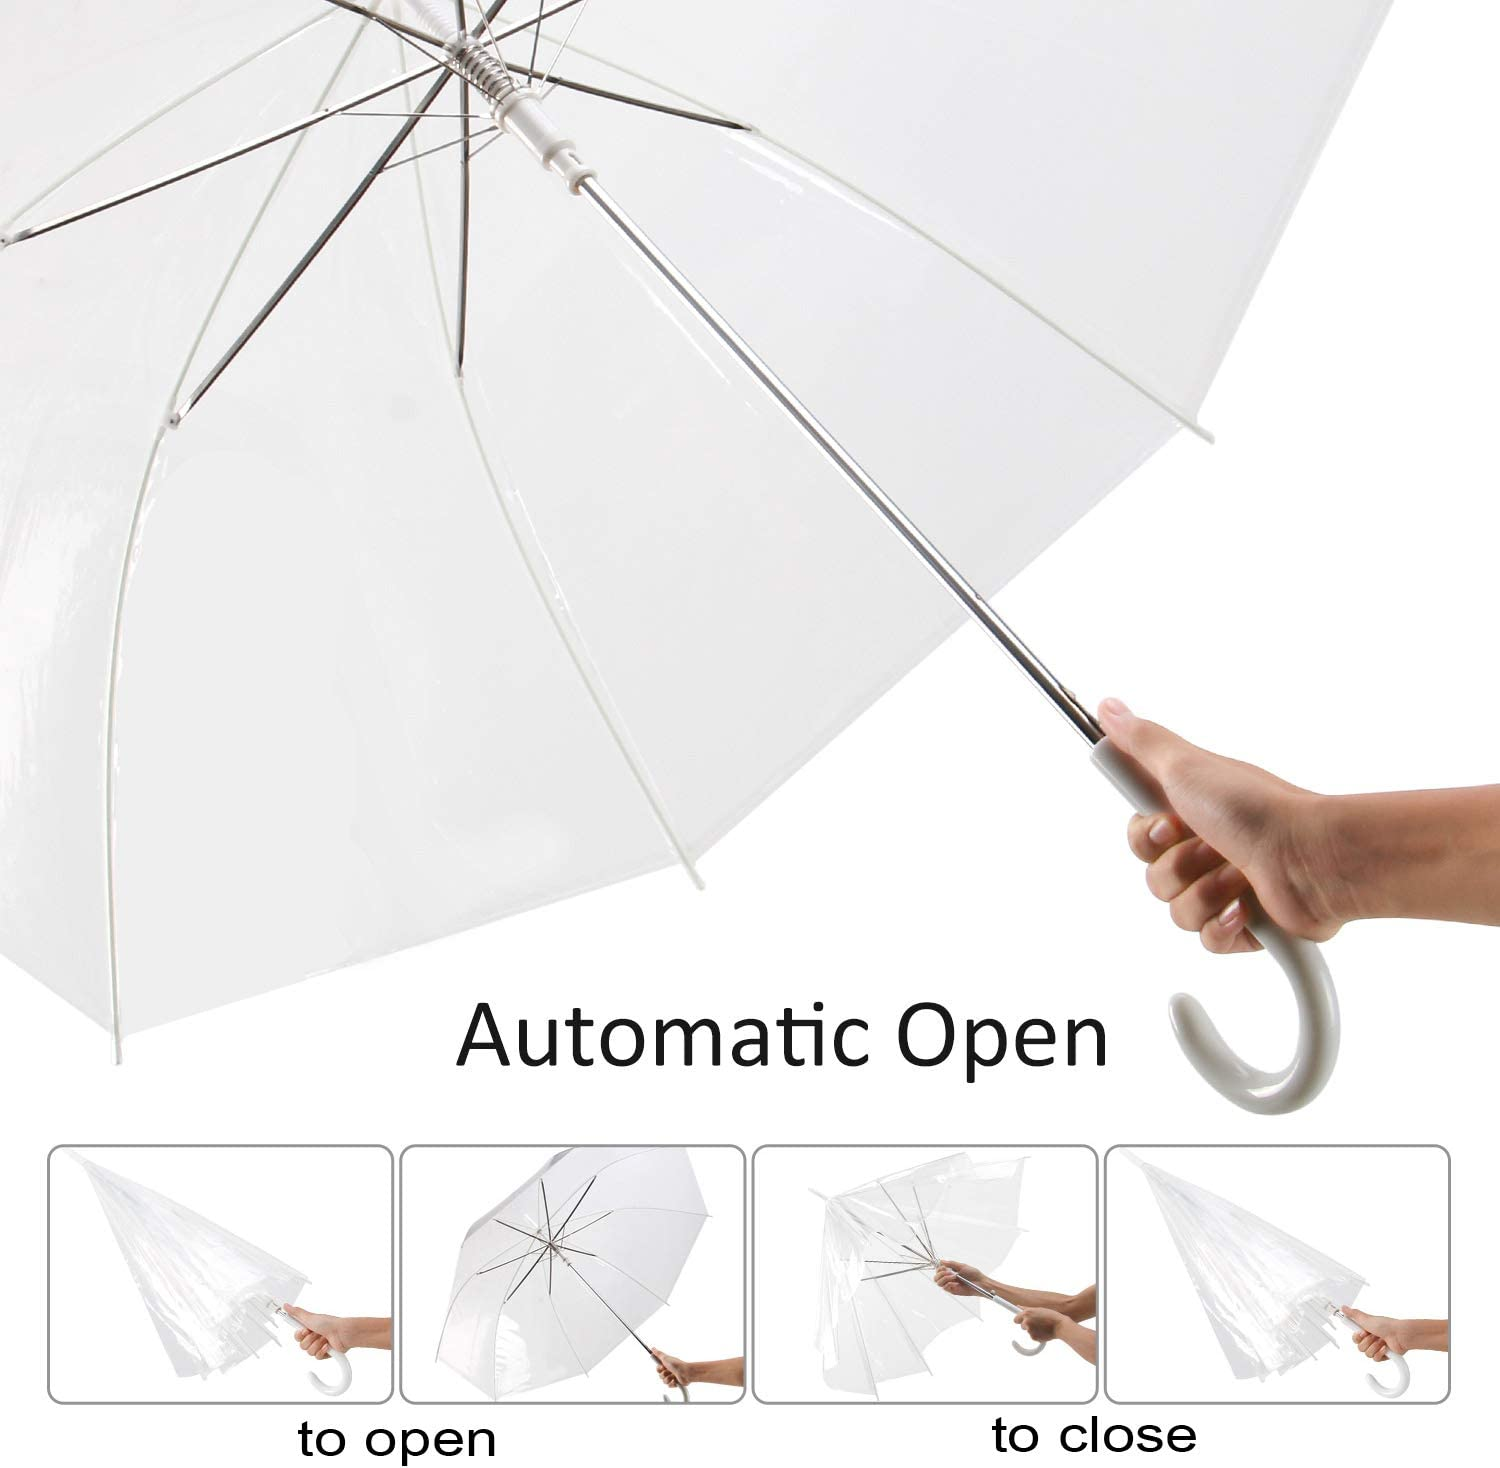 WATINC 18 Pack 46 Inch Clear Bubble Umbrella Large Canopy Transparent Stick Umbrellas Auto Open Windproof with Black European J Hook Handle Outdoor Wedding Style Umbrella for Adult